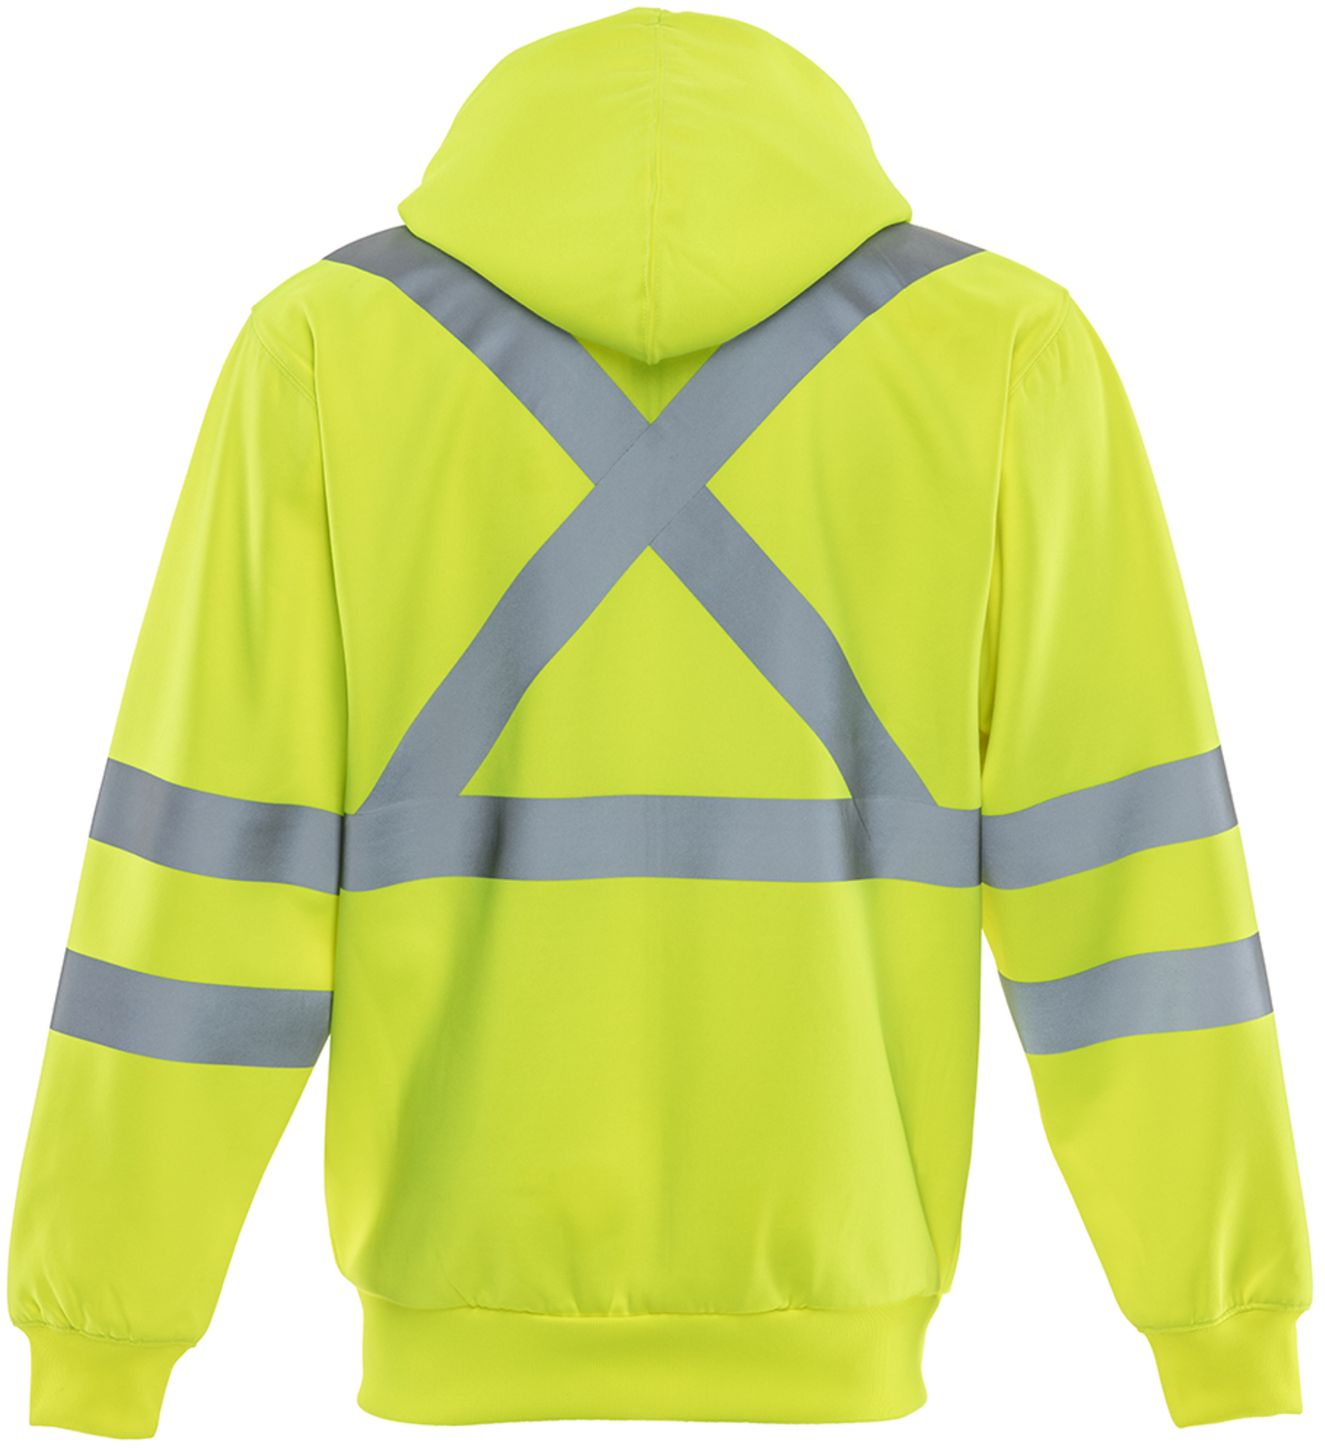 RefrigiWear 0484 HiVis Work Sweatshirt Back